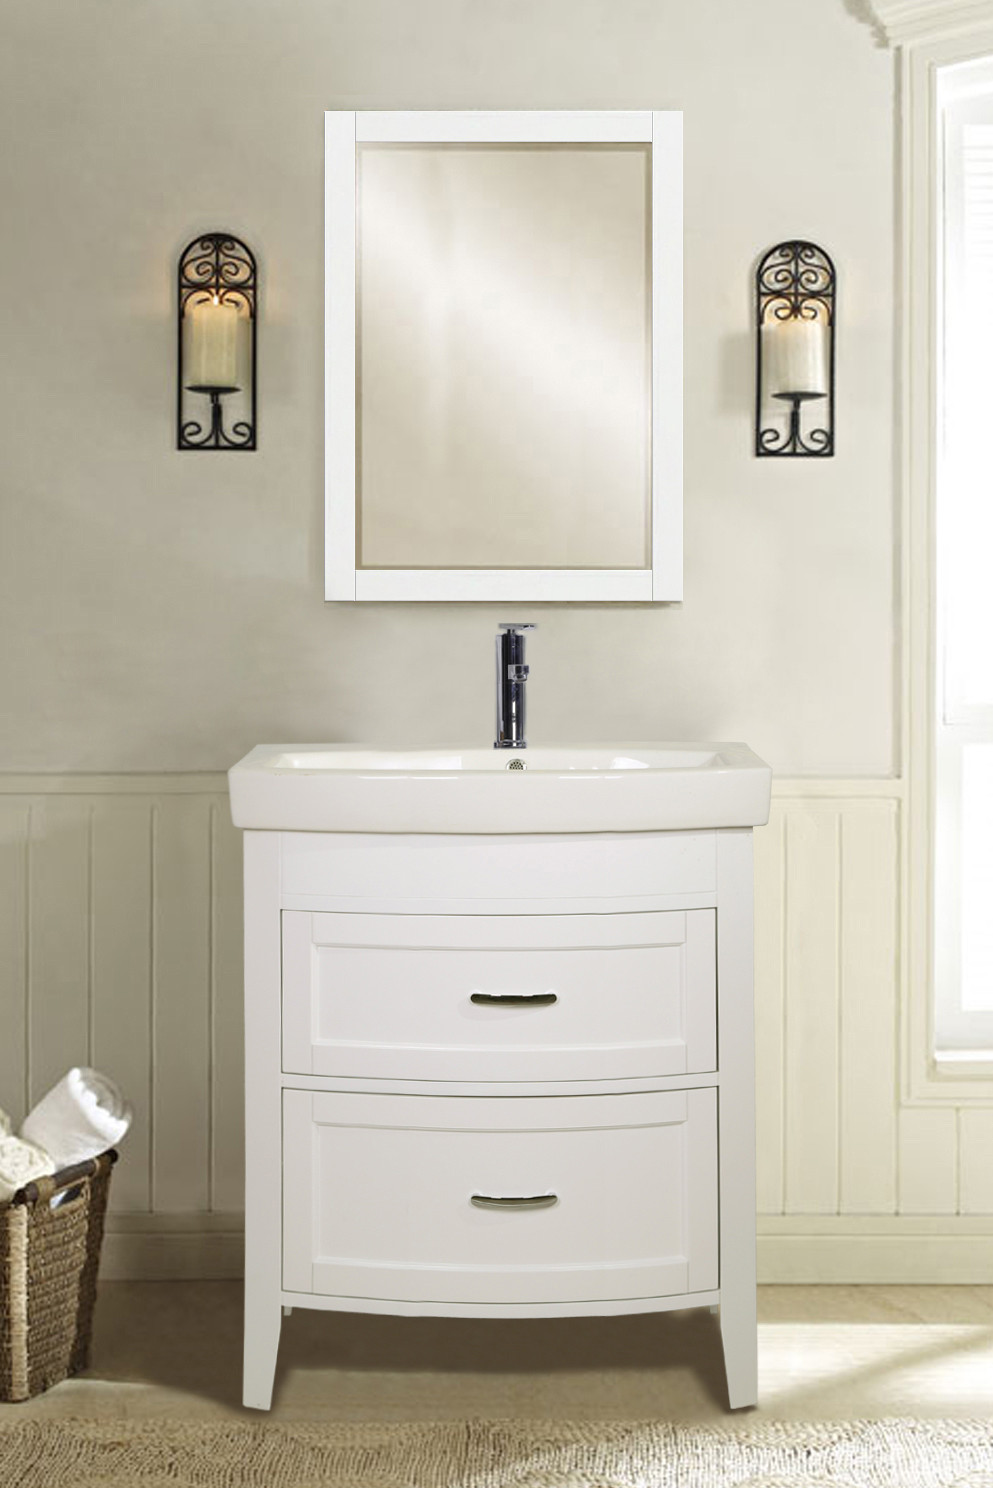 Empire Industries A2802w 28 Inch Freestanding Vanity With 2